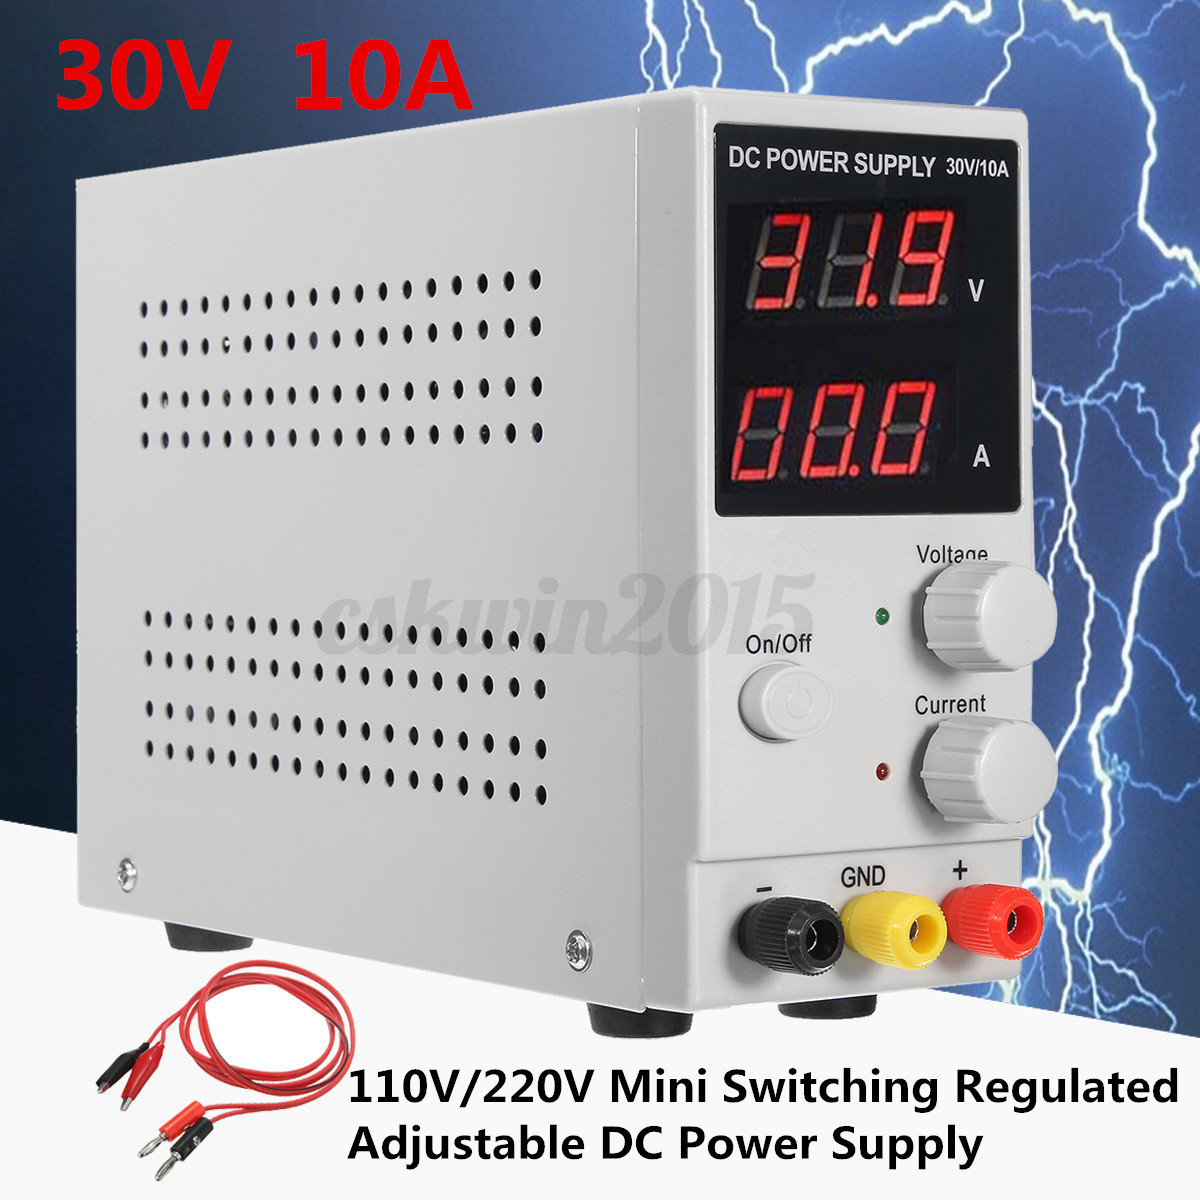 Adjustable 13 22v Regulated Power Supply Wiring Diagrams Dc 30v 10a Switching Lcd Acopian Radio Shack